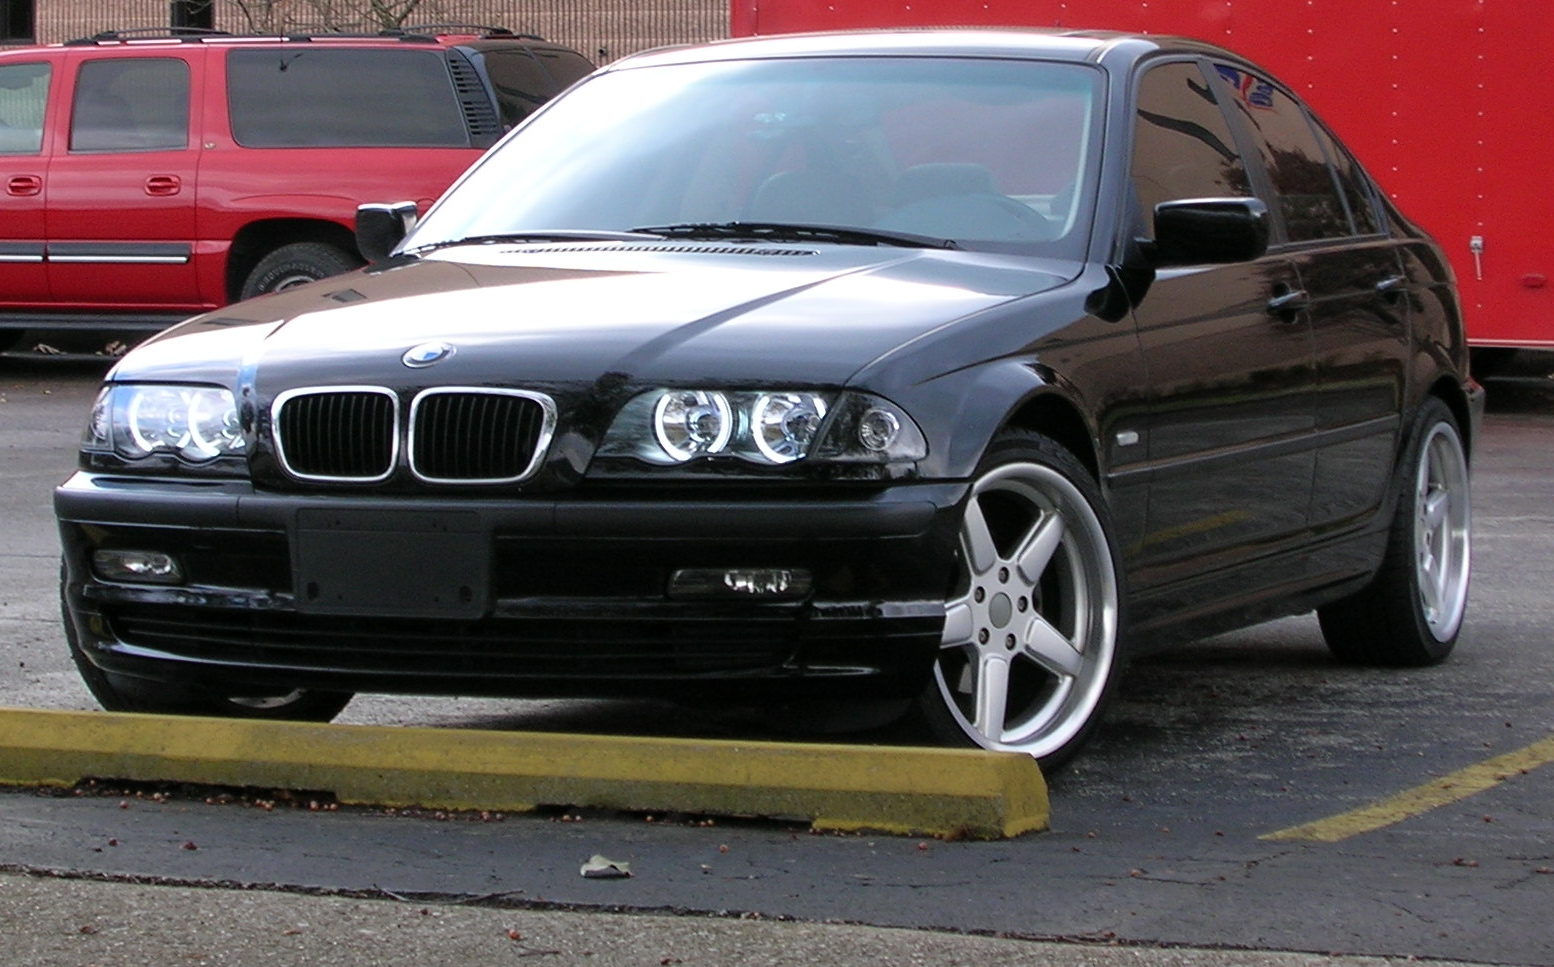 Bmw 323i 2000 Review Amazing Pictures And Images Look